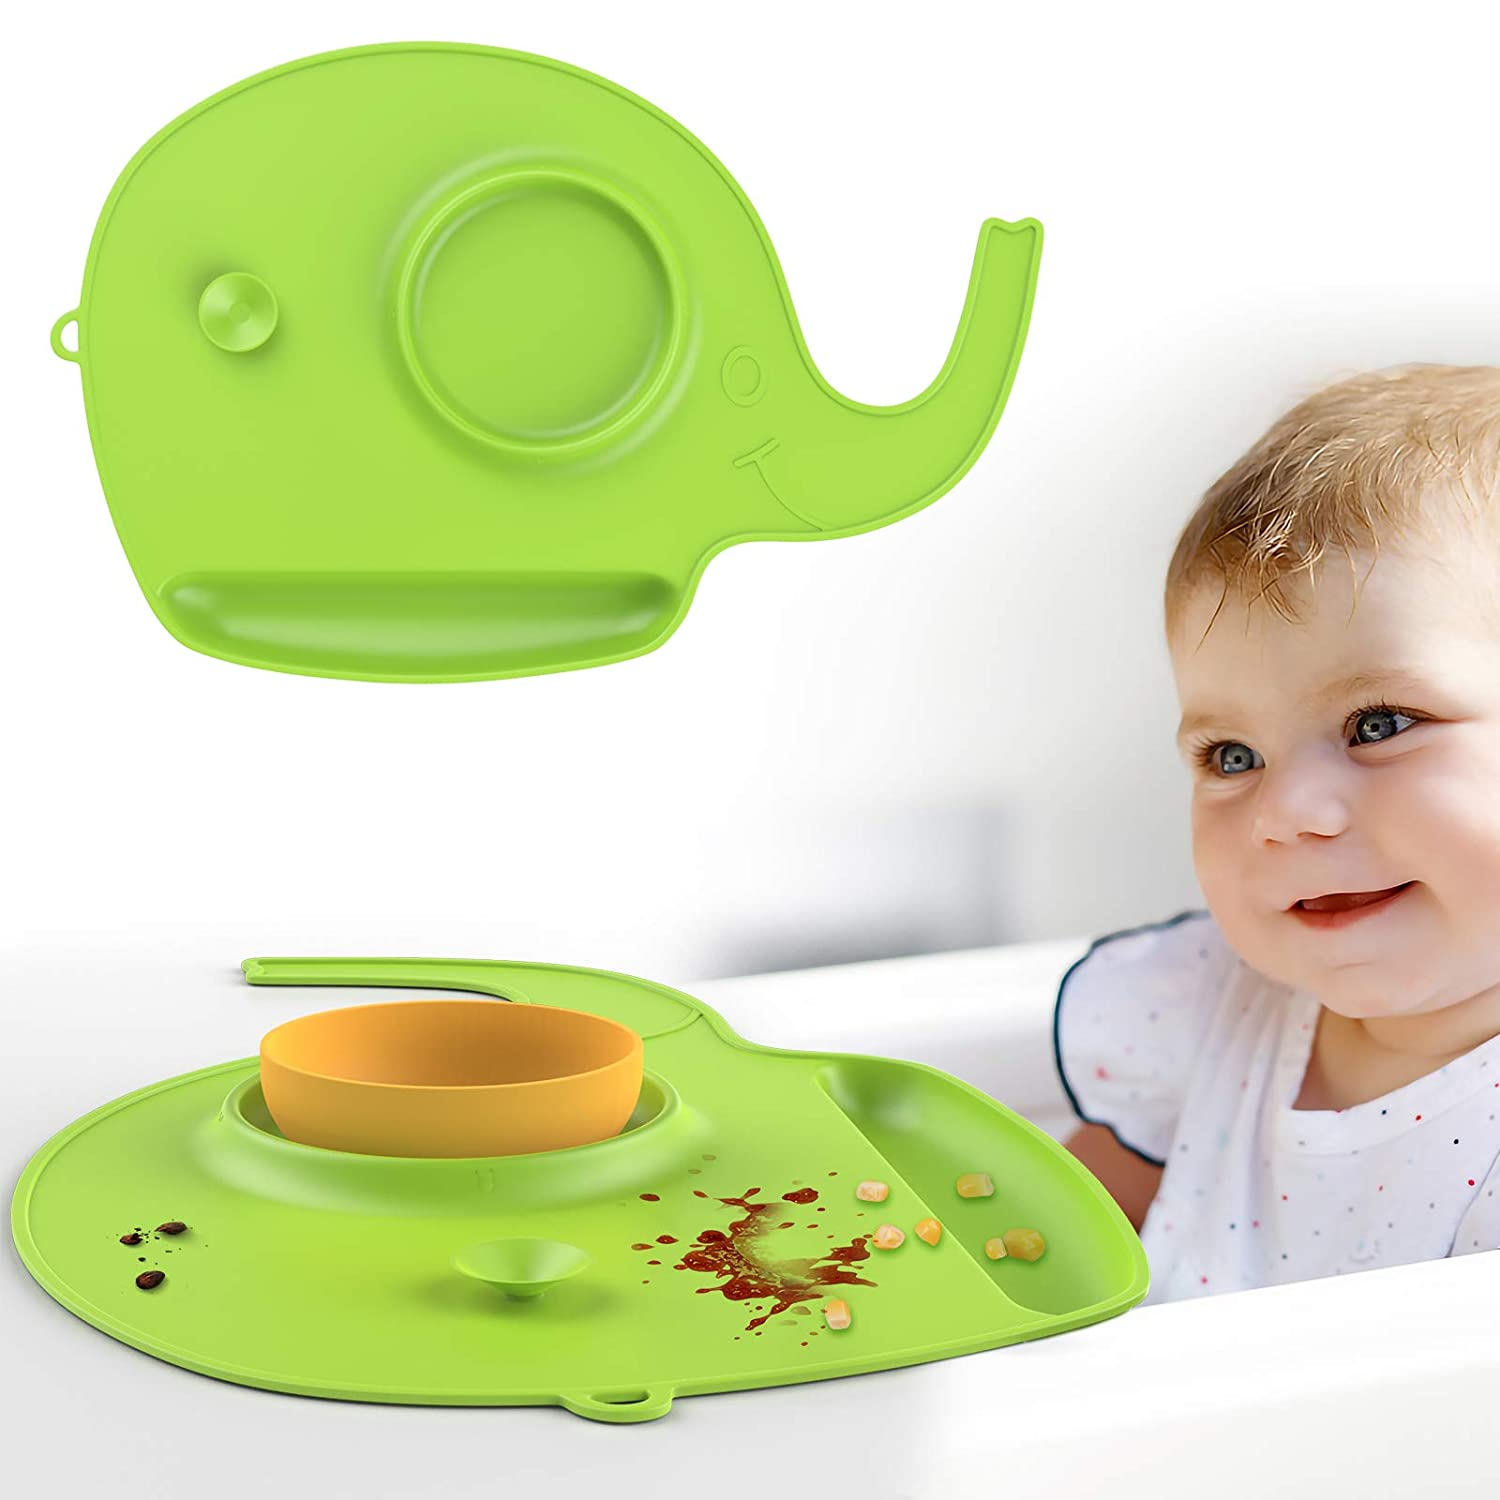 Zooawa Baby Food Catching Placemat, Non-Slip Food-Grade Silicone Foldable Mat Machine Washable Multiple Application Easy to Use with Adorable Animal Shape Soft Flexible Heat-Resistant, Green